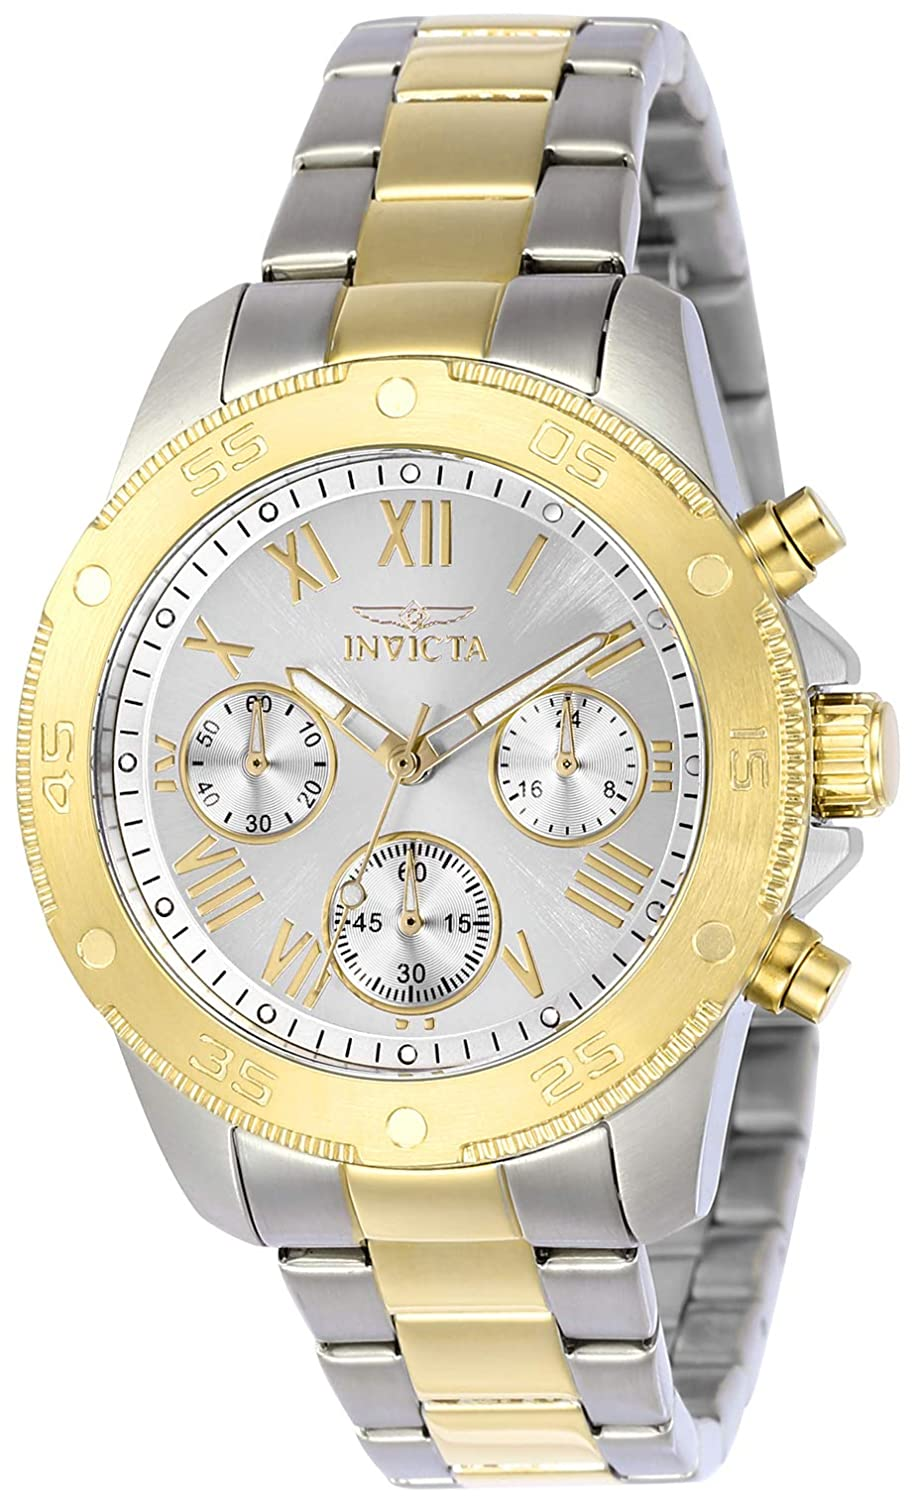 Invicta Women s Wildflower Quartz Watch with Stainless-Steel Strap, Two Tone, 18 Model 21733